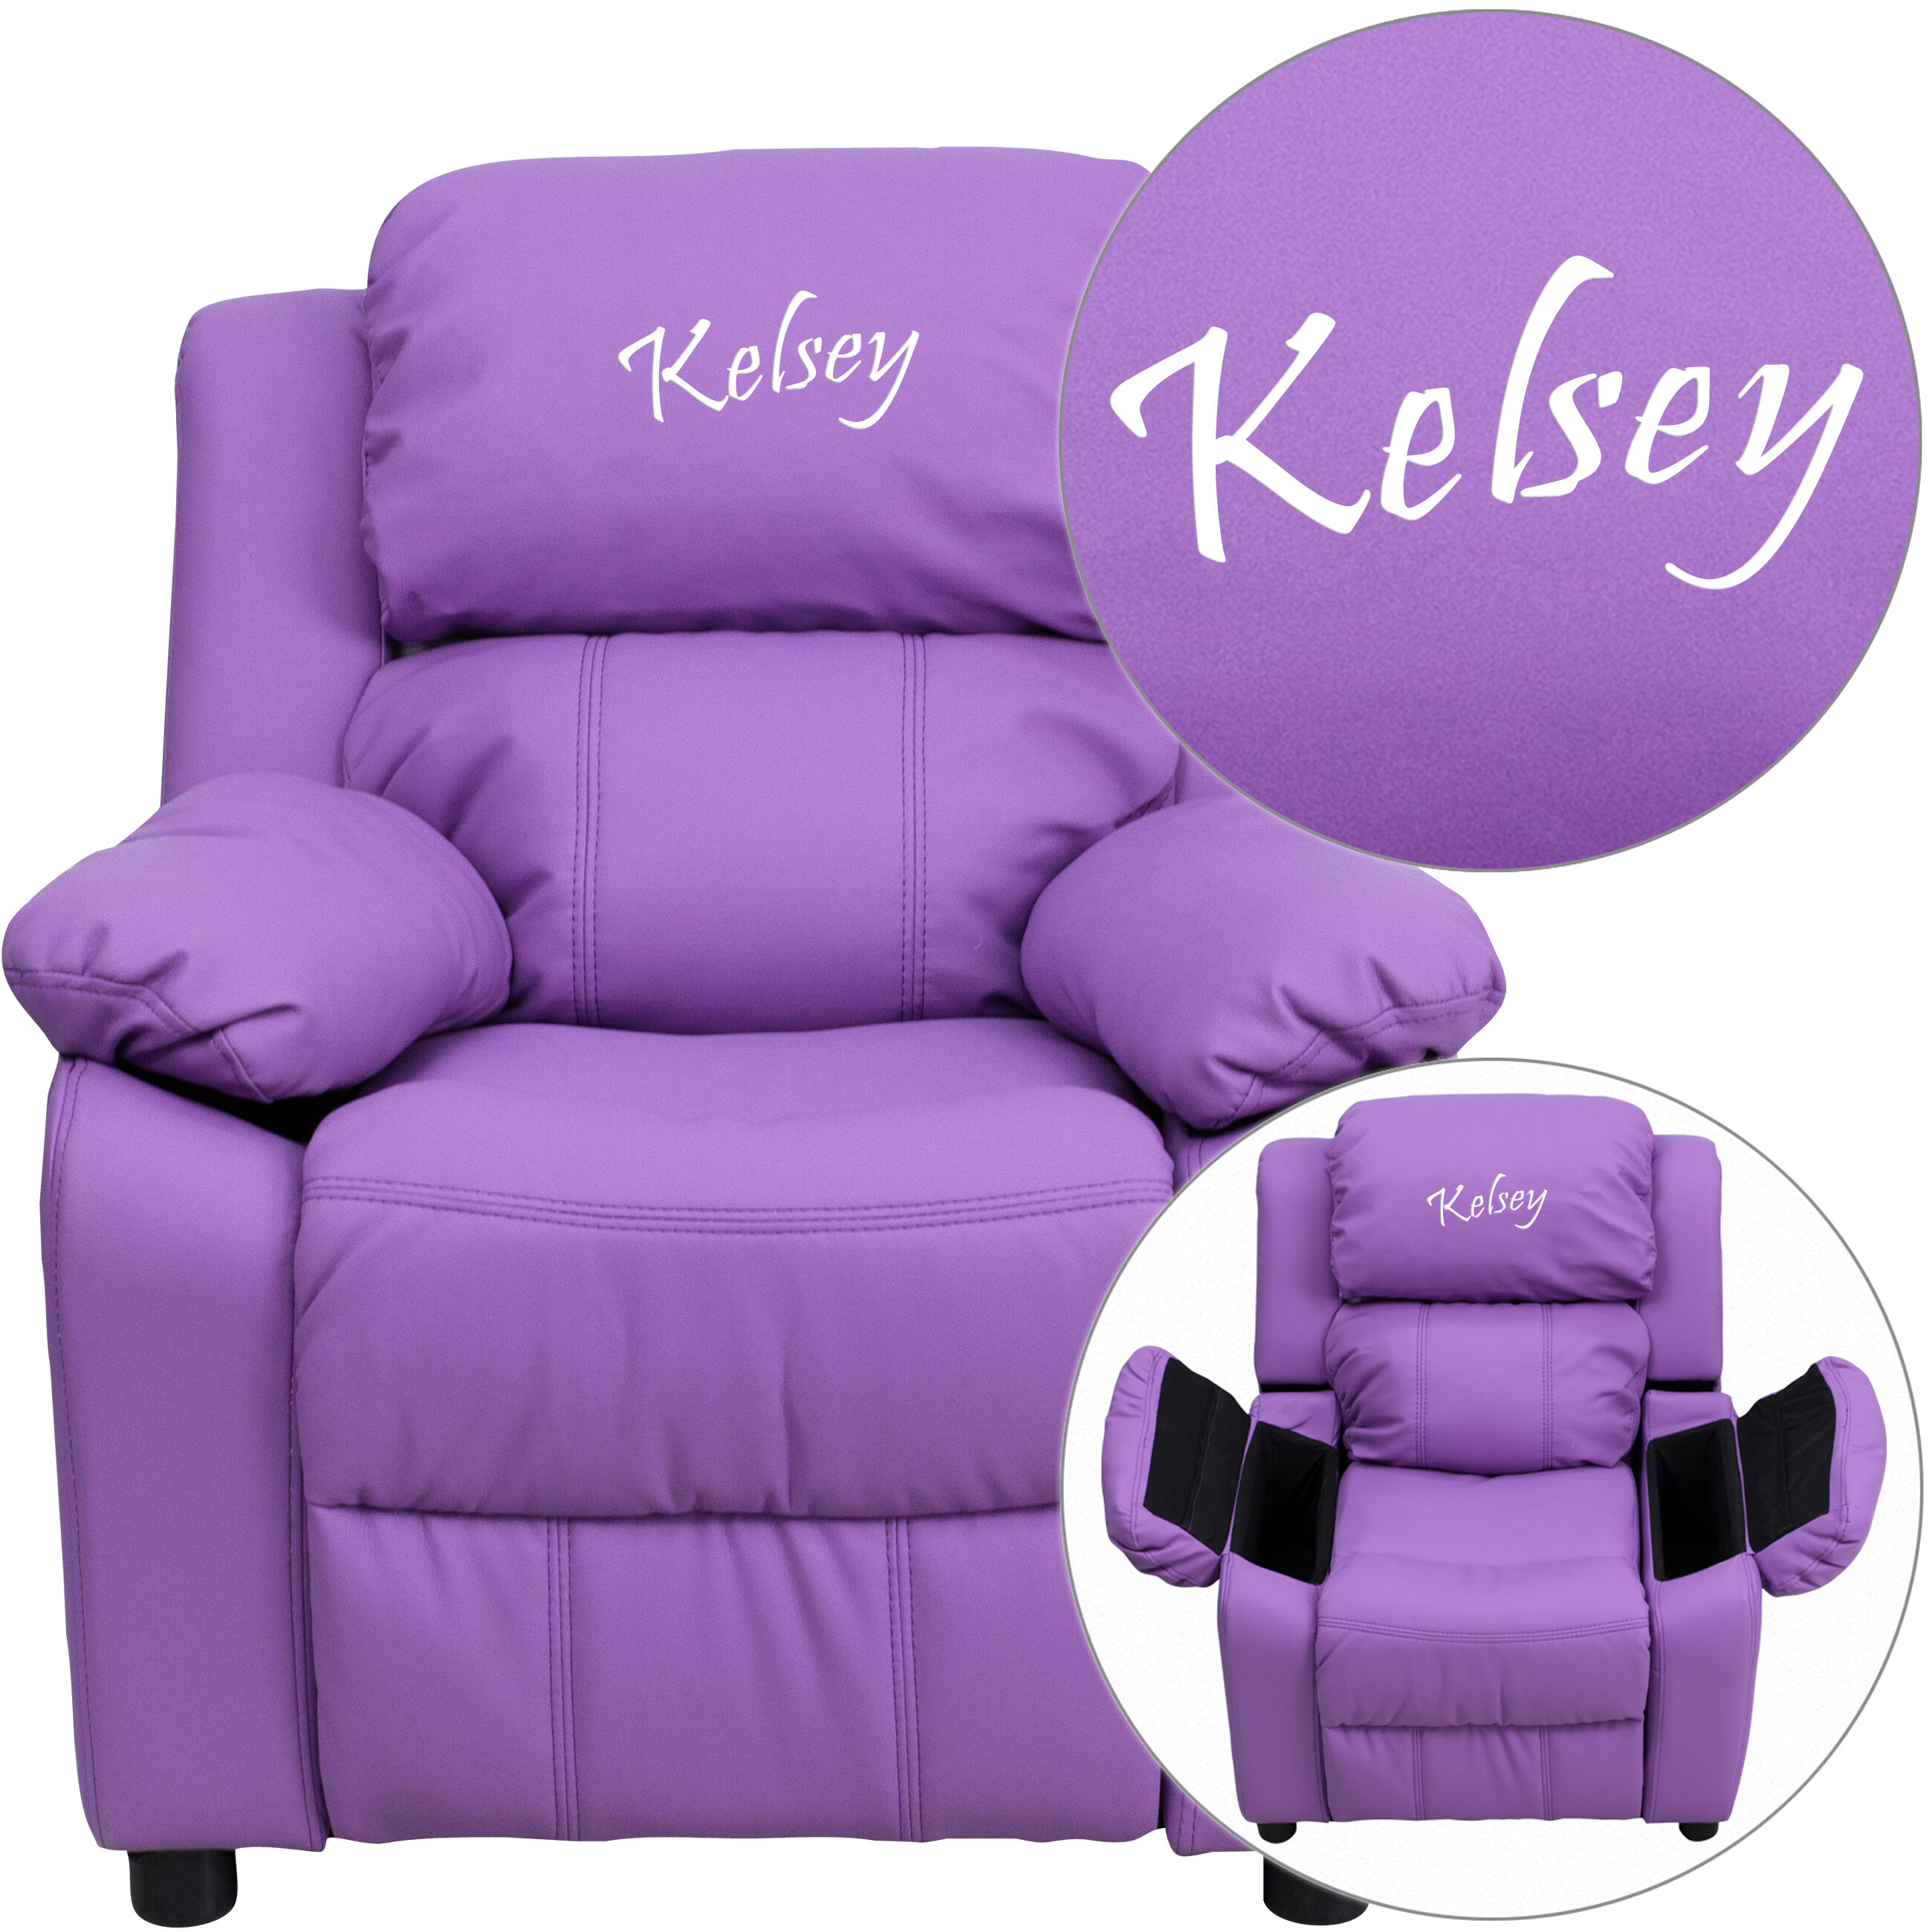 Personalized Deluxe Padded Lavender Vinyl Kids Recliner with Storage Arms & Personalized Kids Recliners at low budget prices | Bizchair.com islam-shia.org